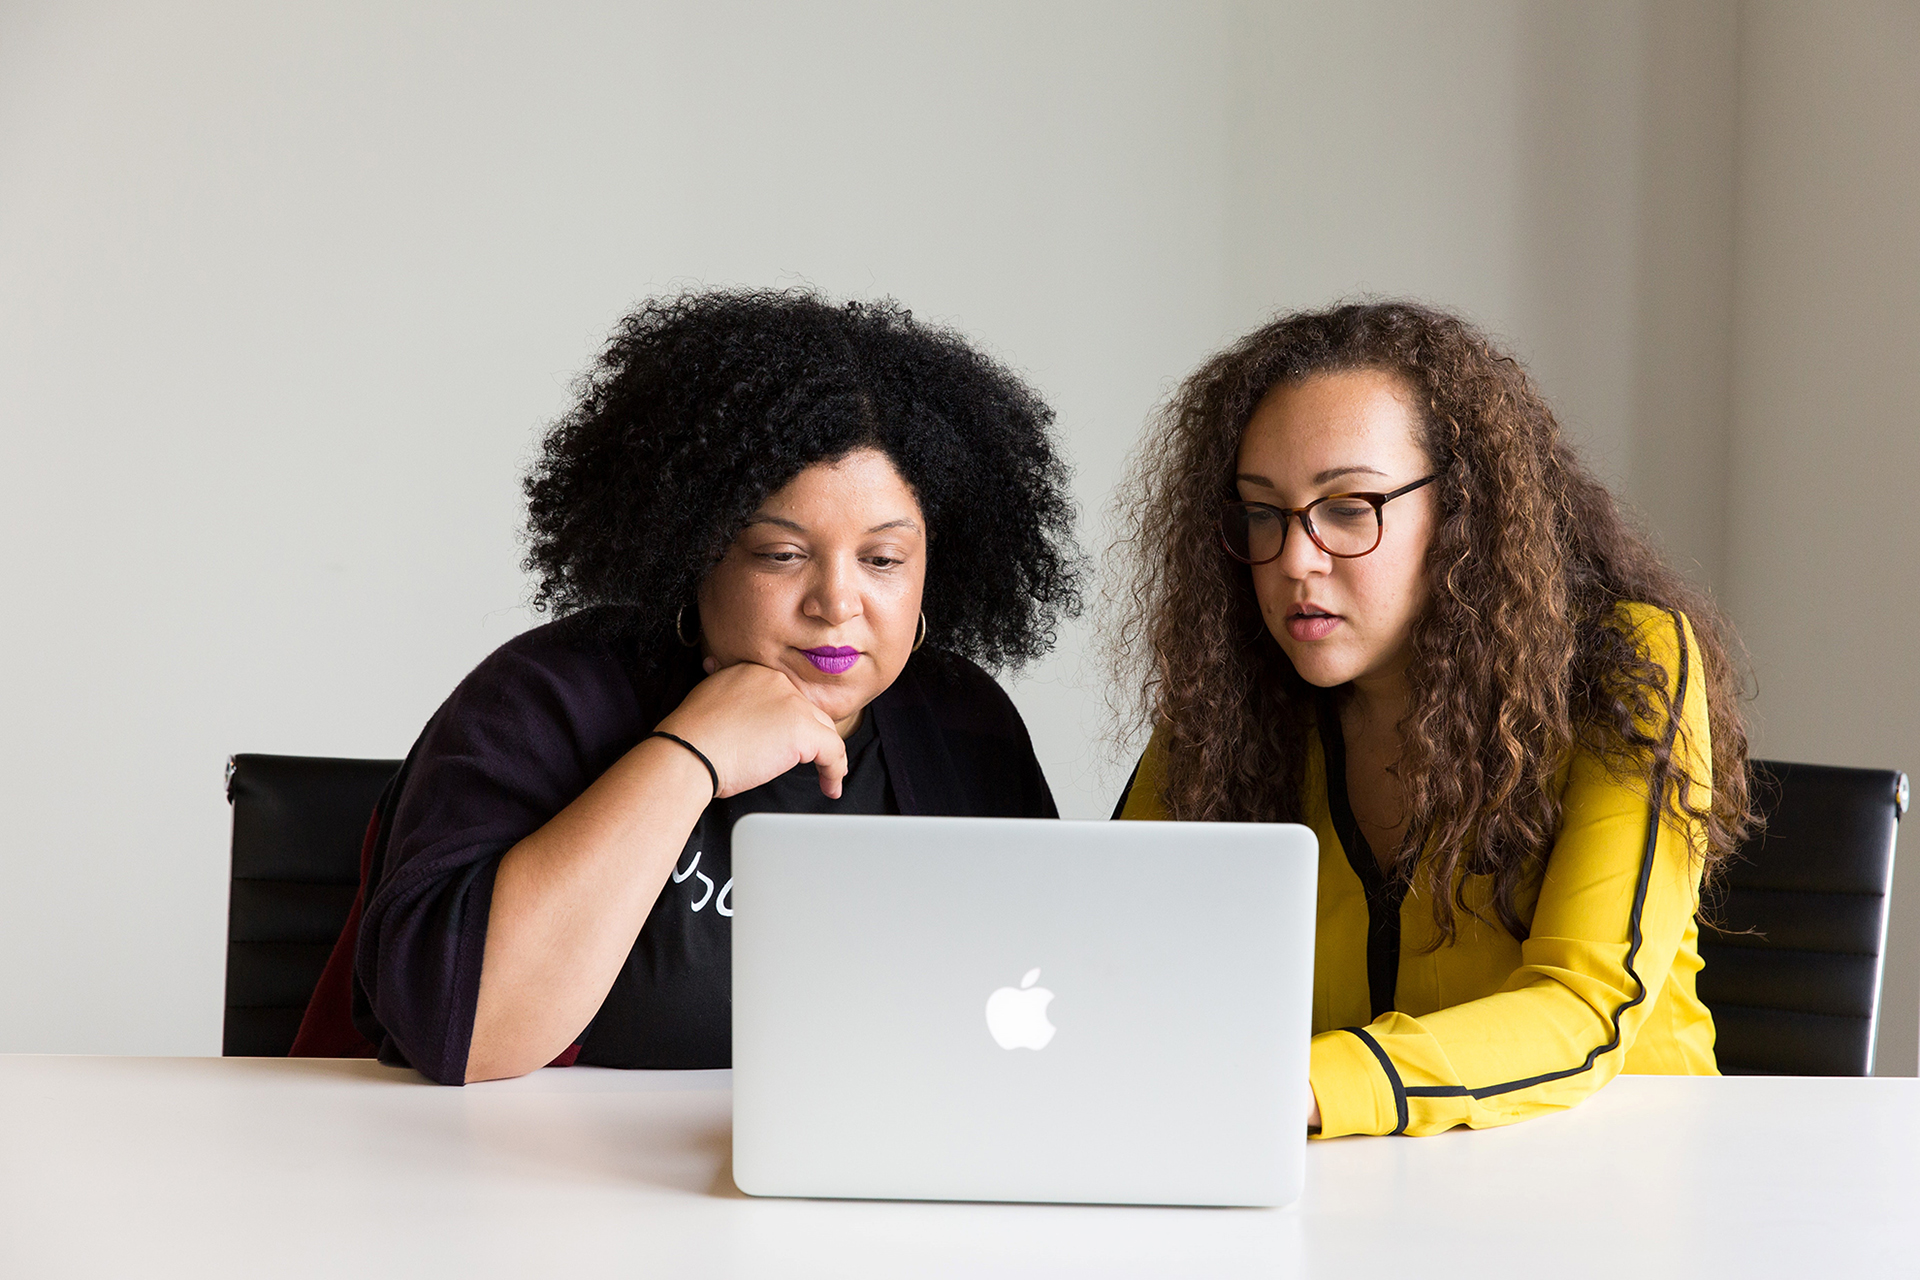 Two women working on a laptop at a table